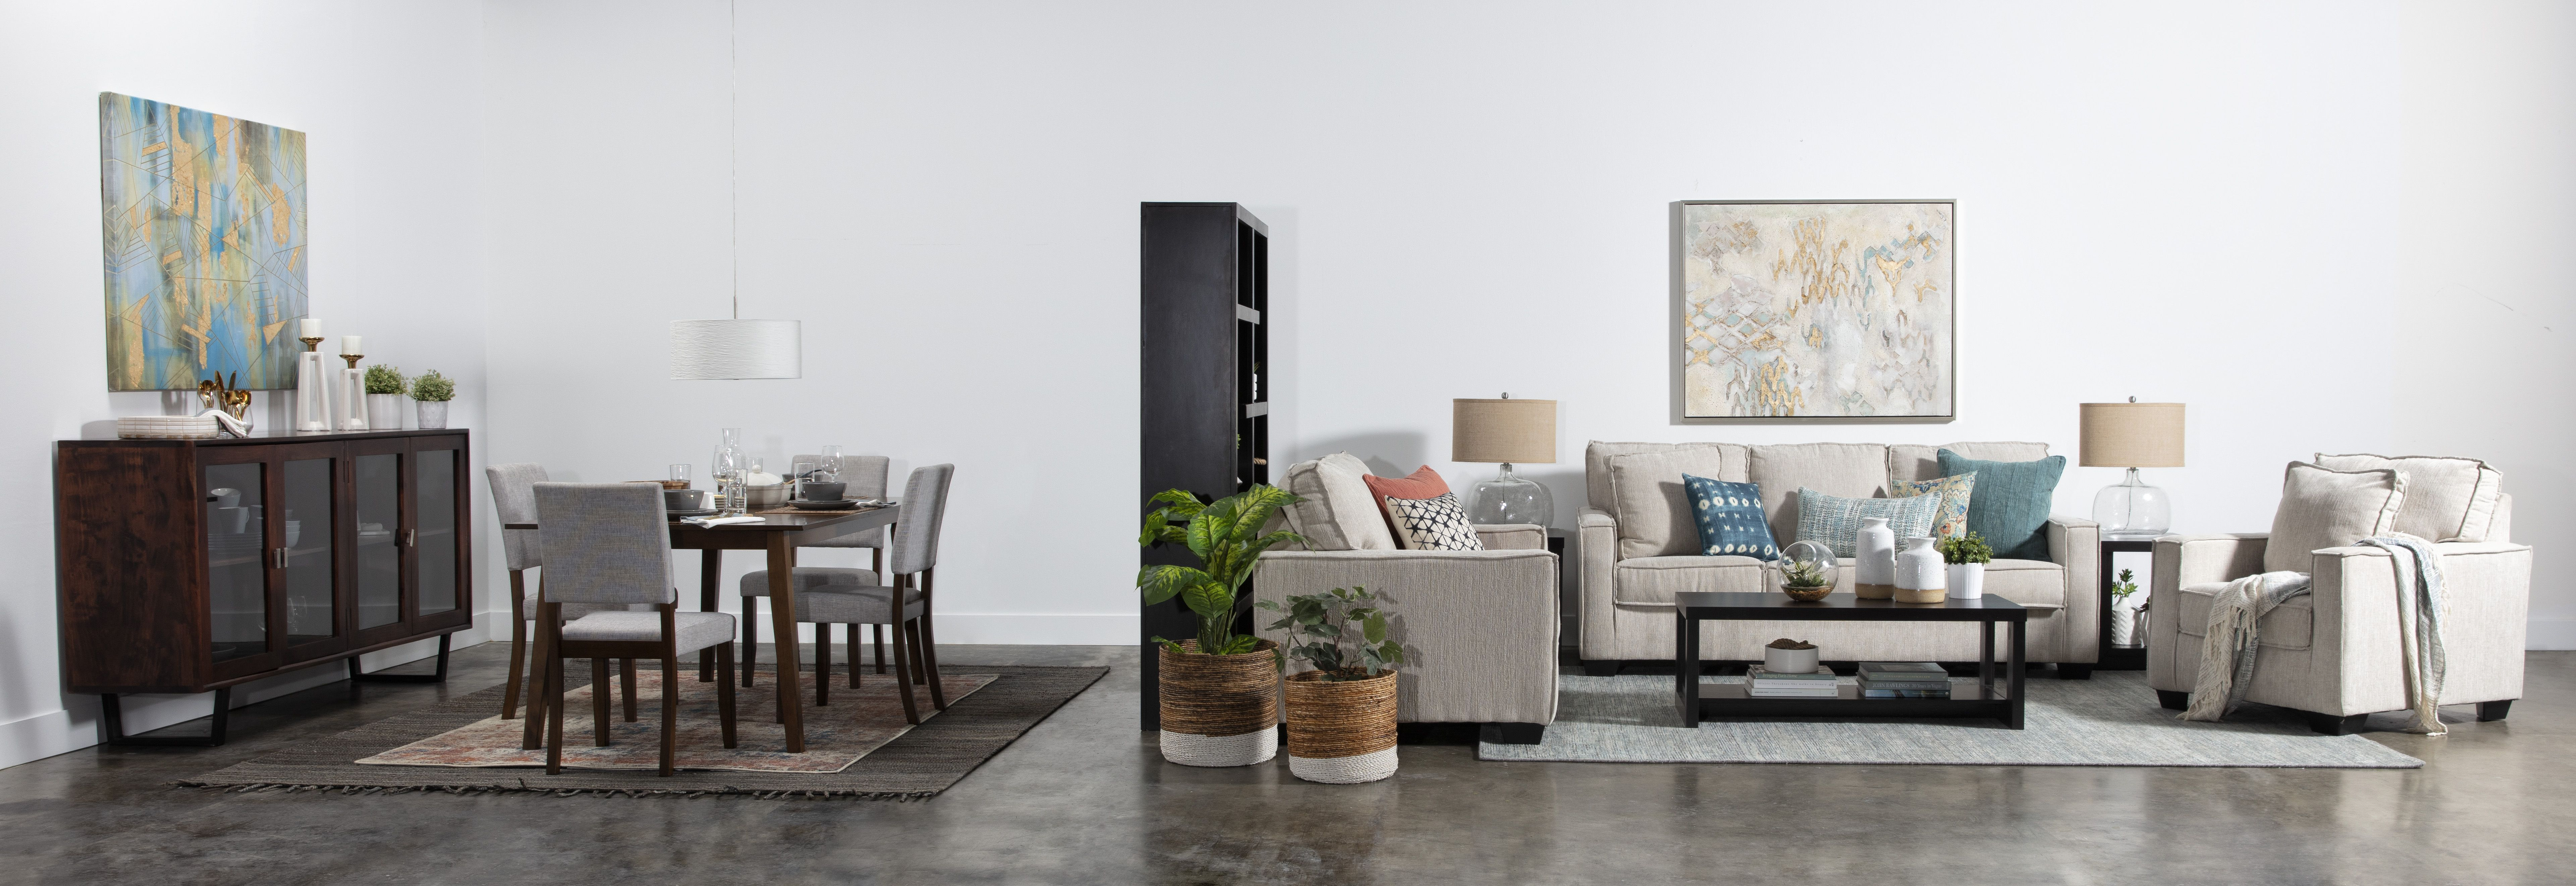 Small Space Contemporary Living | Small space living, Small spaces